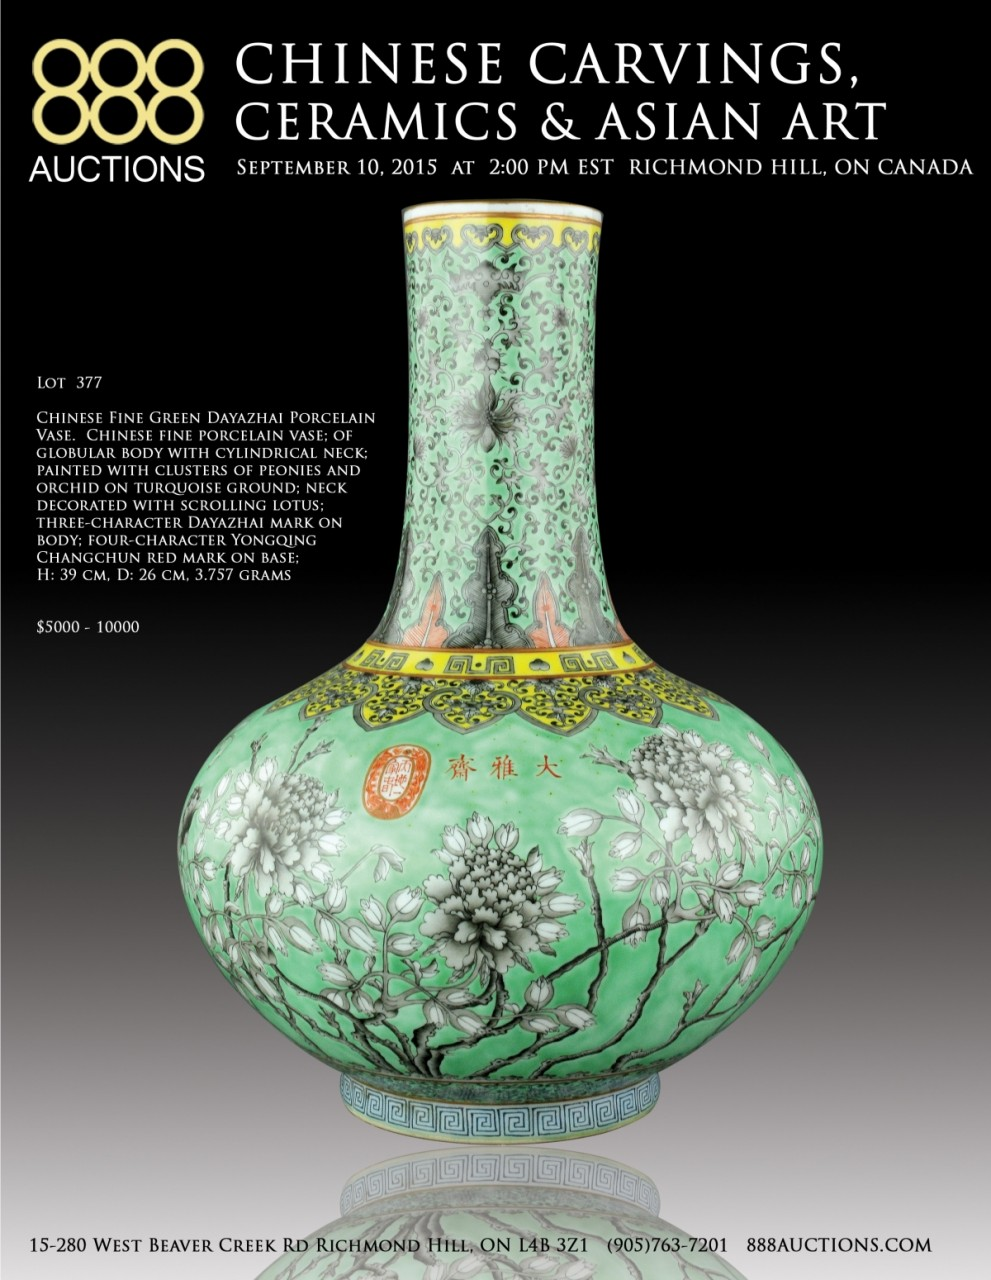 NEXT AUCTION 10 SEPT 2015 CHINESE CARVINGS, CERAMICS & ASIAN WORKS OF ART